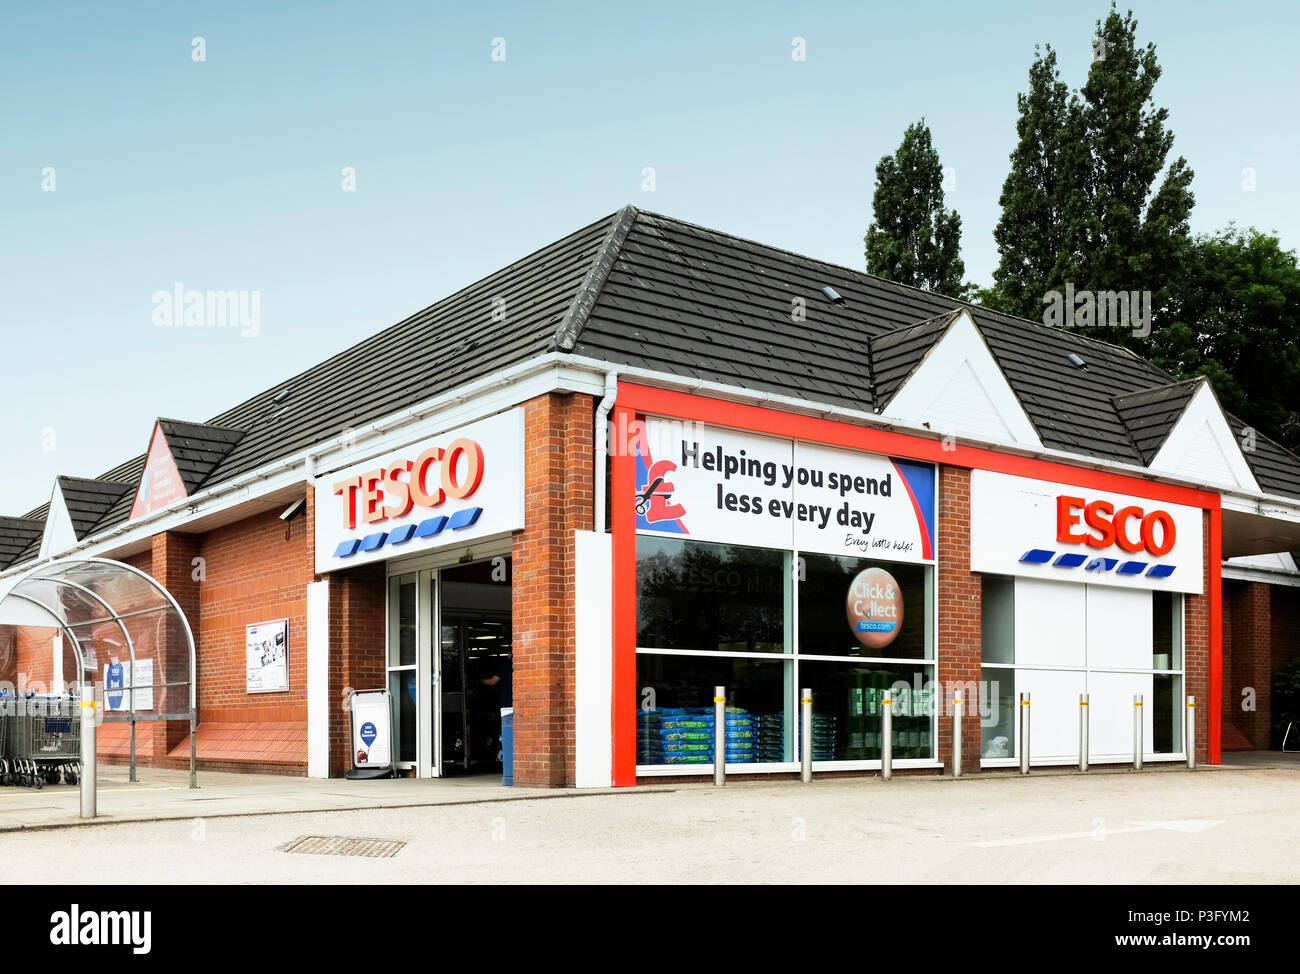 Tesco shop in Middlewich Cheshire UK - Stock Image